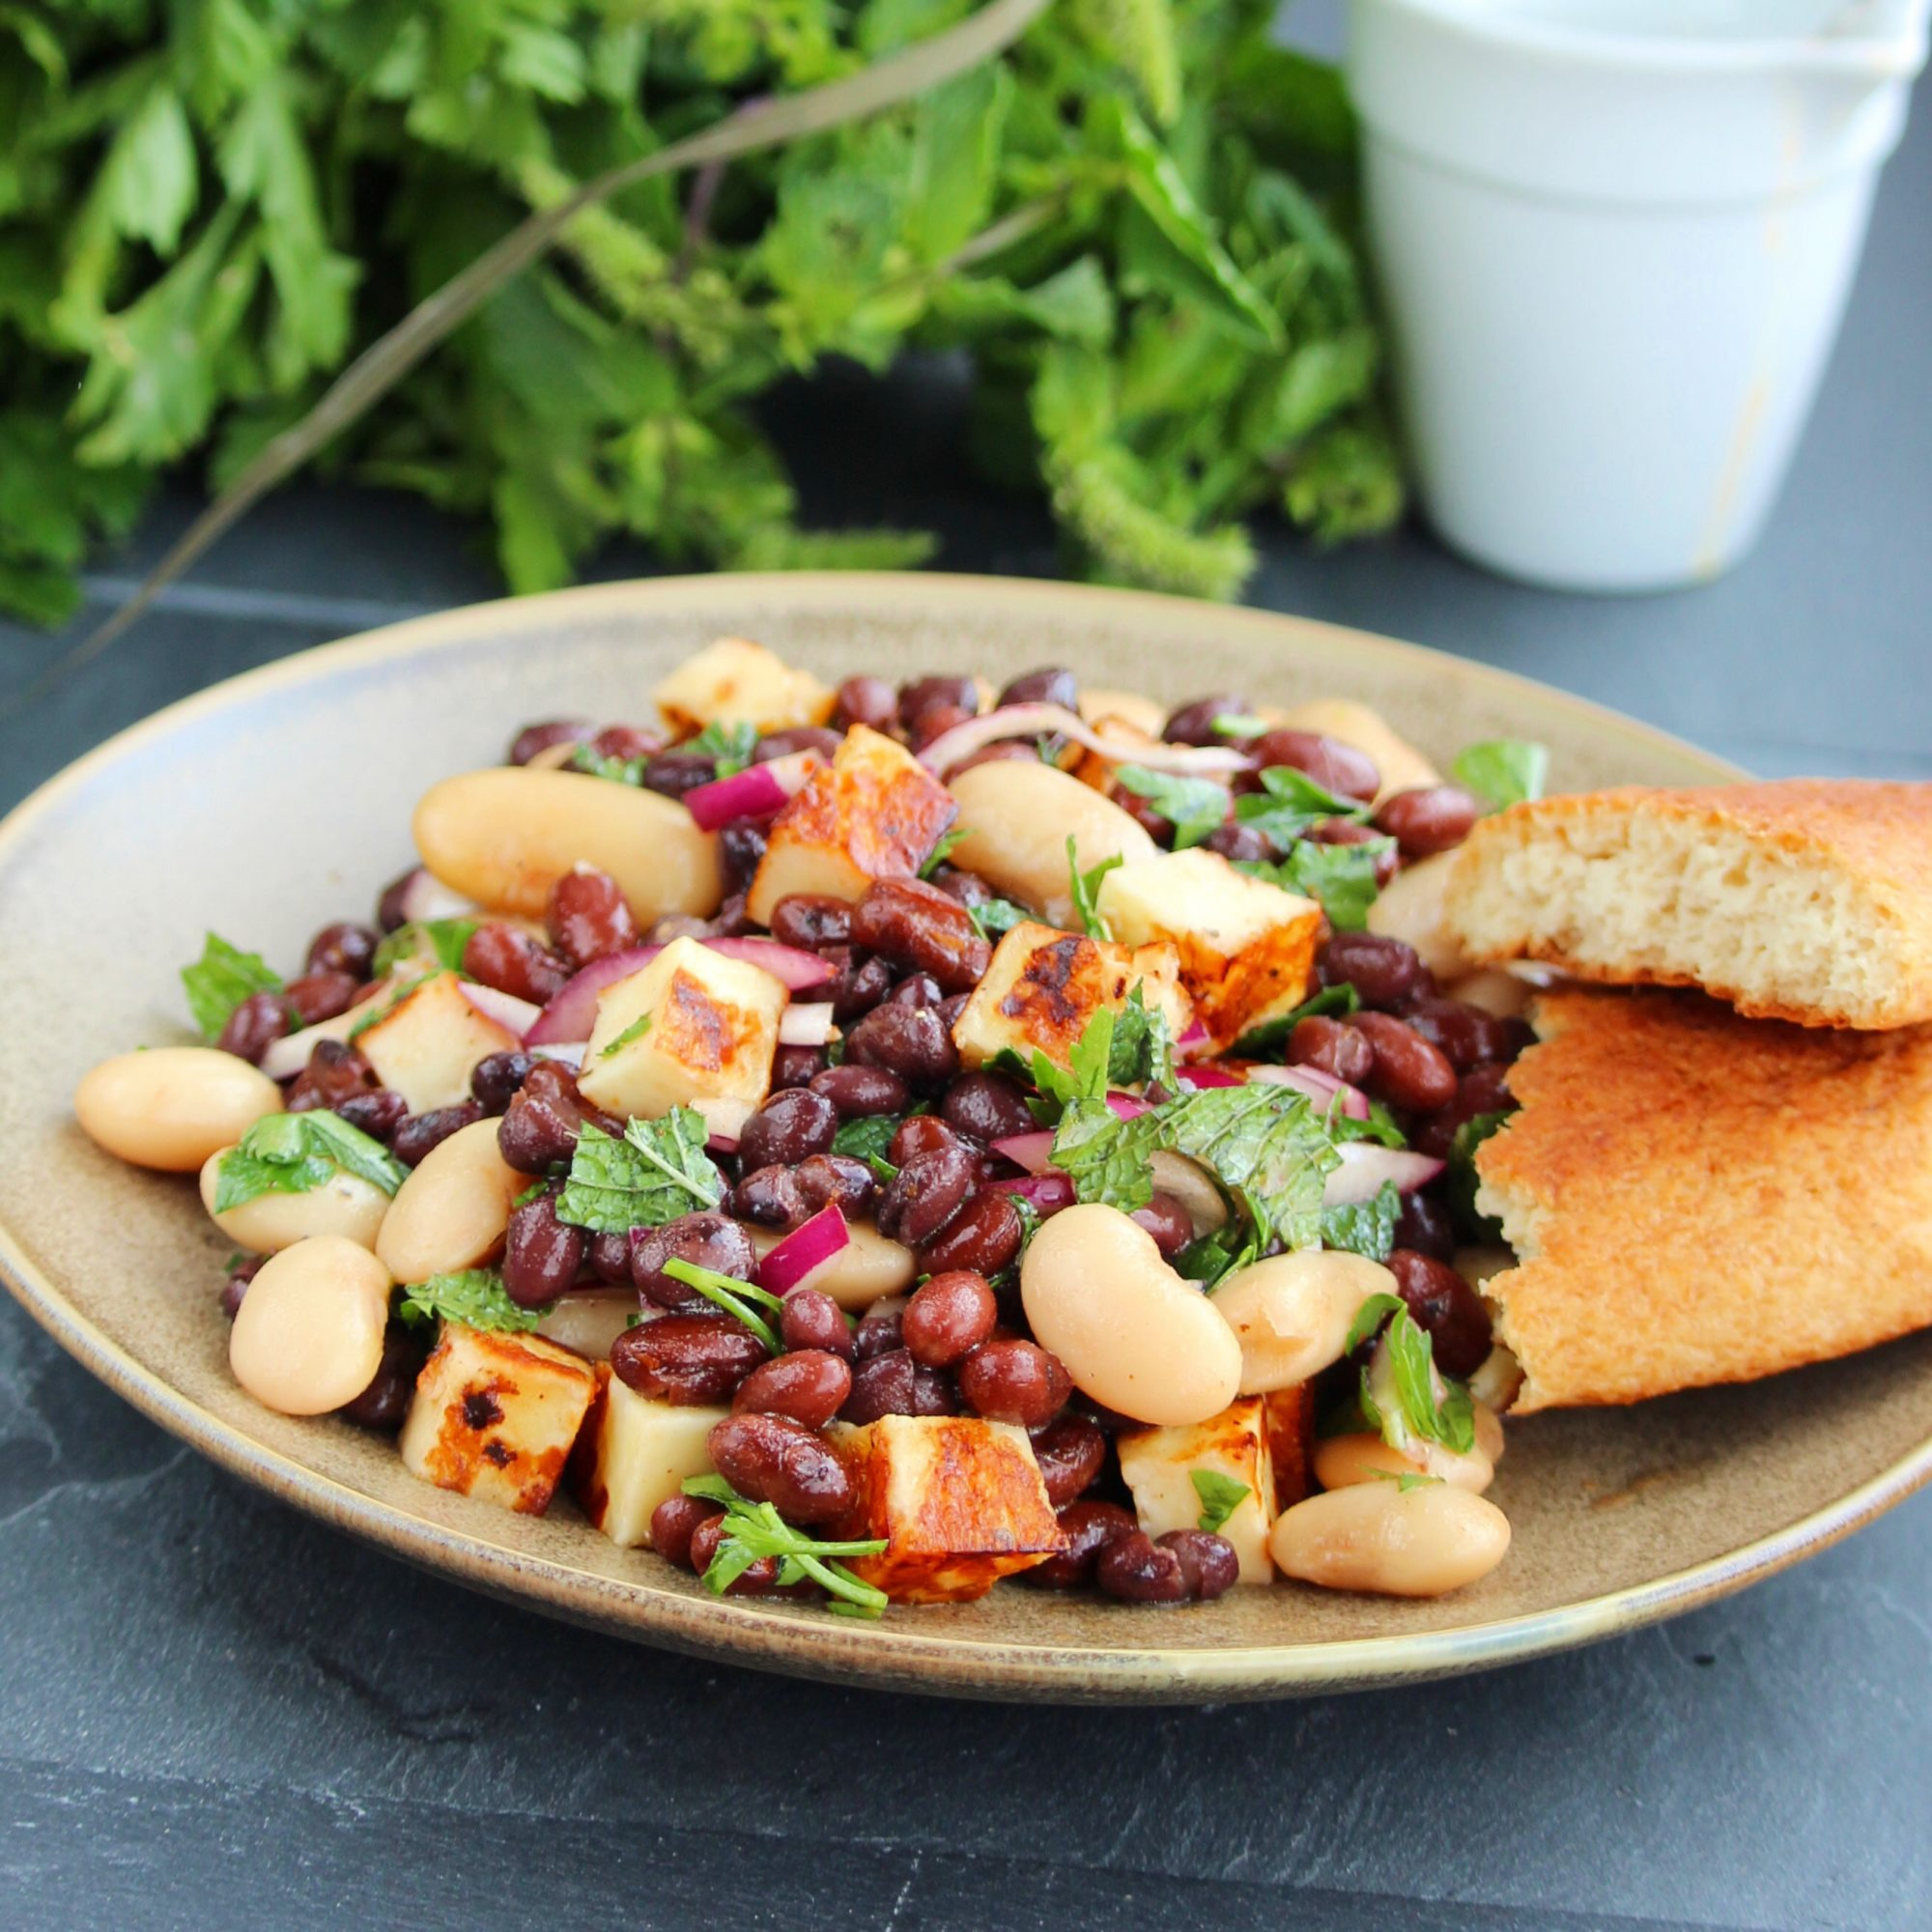 Halloumi Three-Bean Salad with Pomegranate-Harissa Vinaigrette